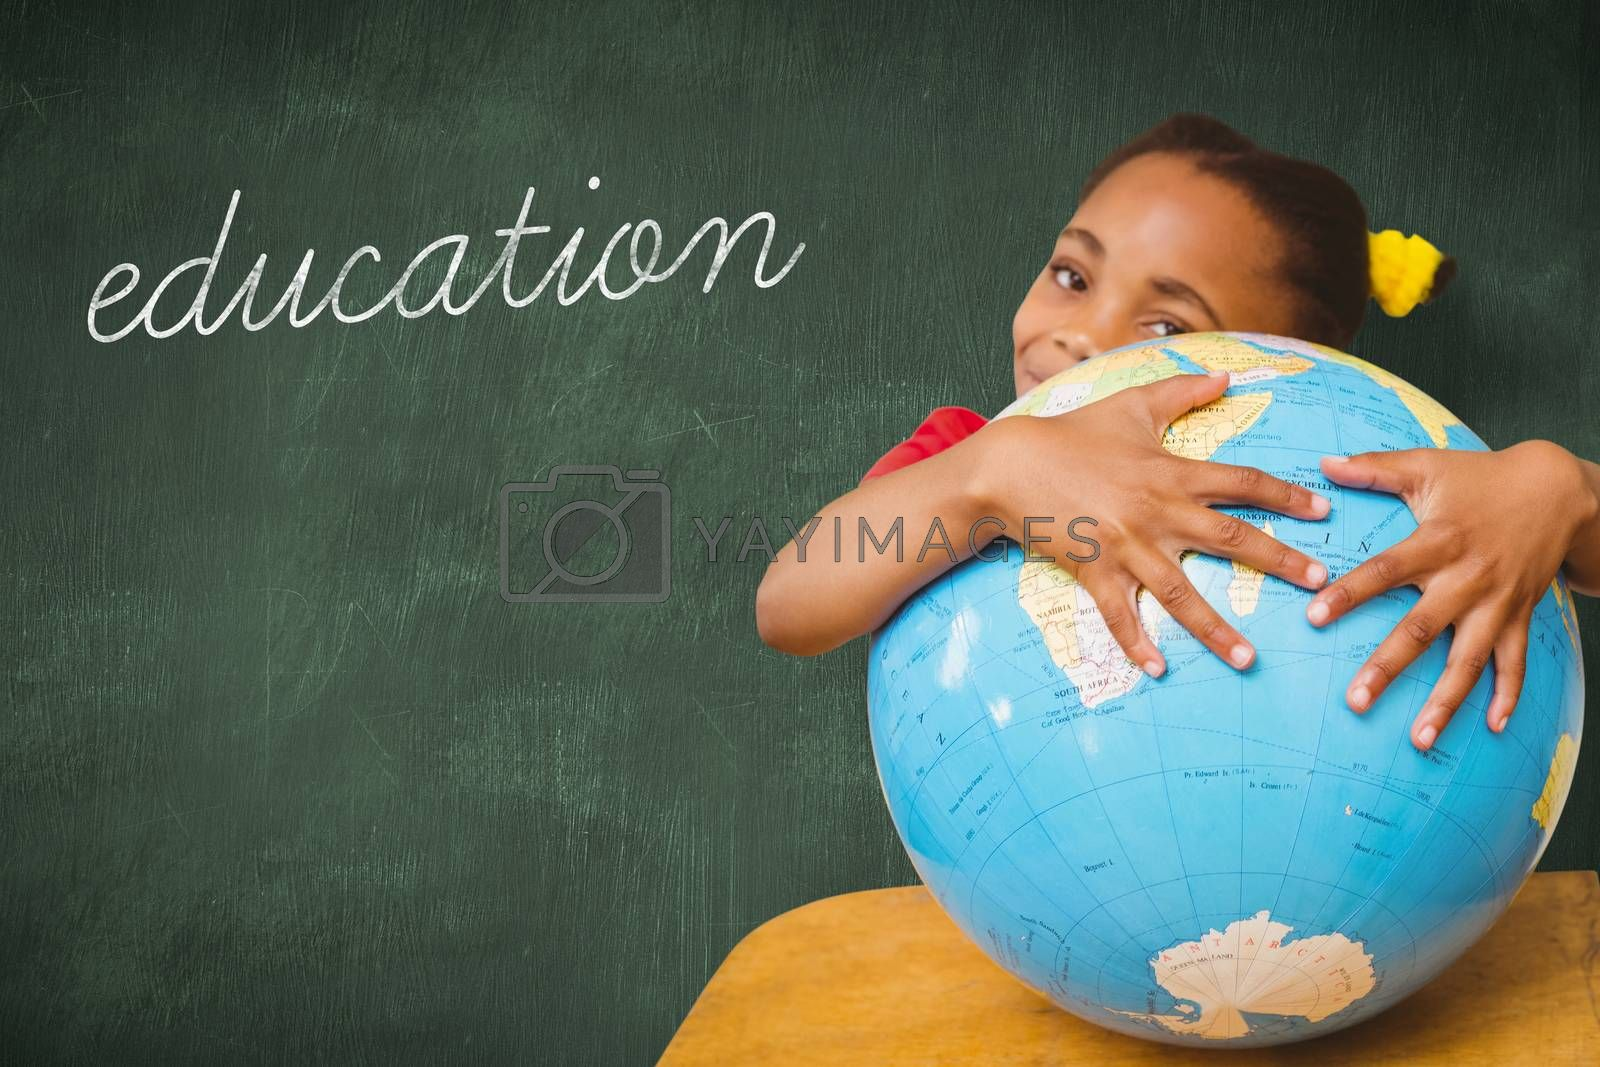 The word education and pupil hugging globe against green chalkboard